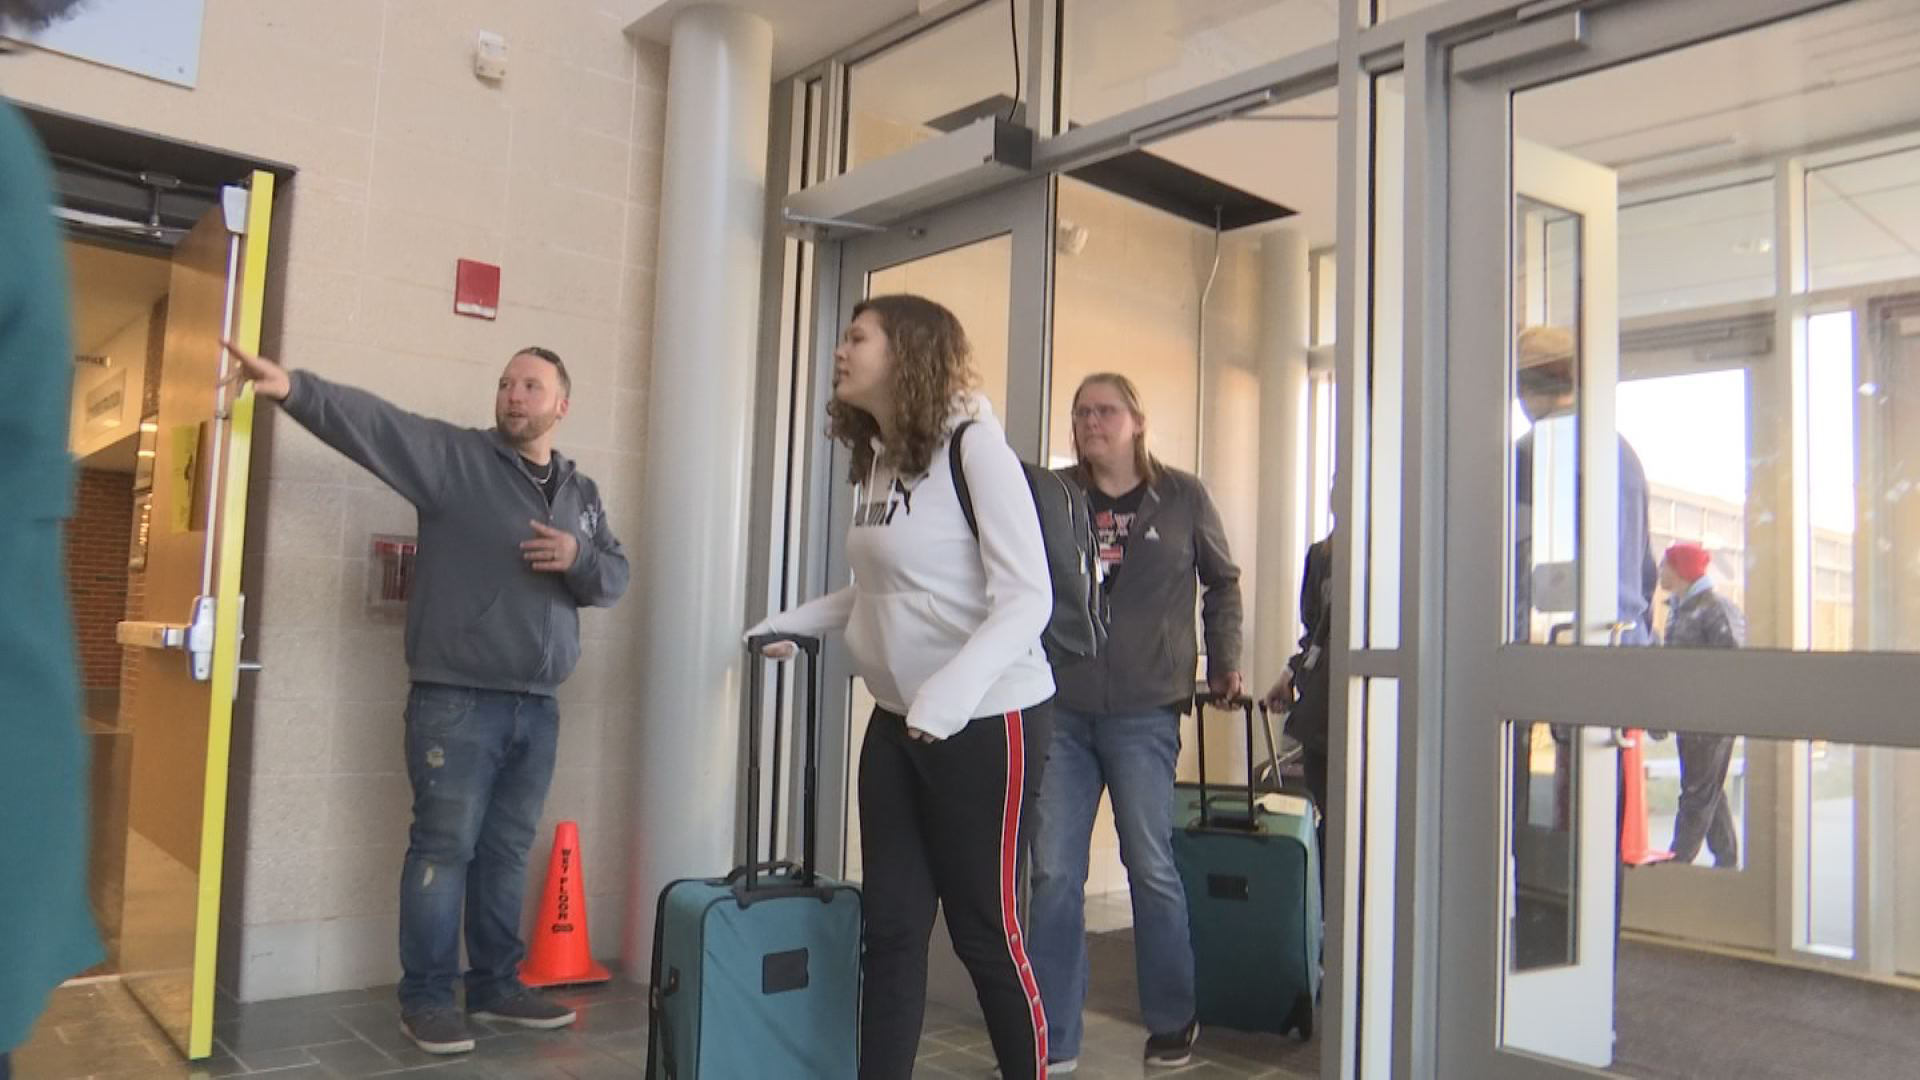 Fitch High School students heading to London to perform in the city's New Year's Day Parade and Festival.